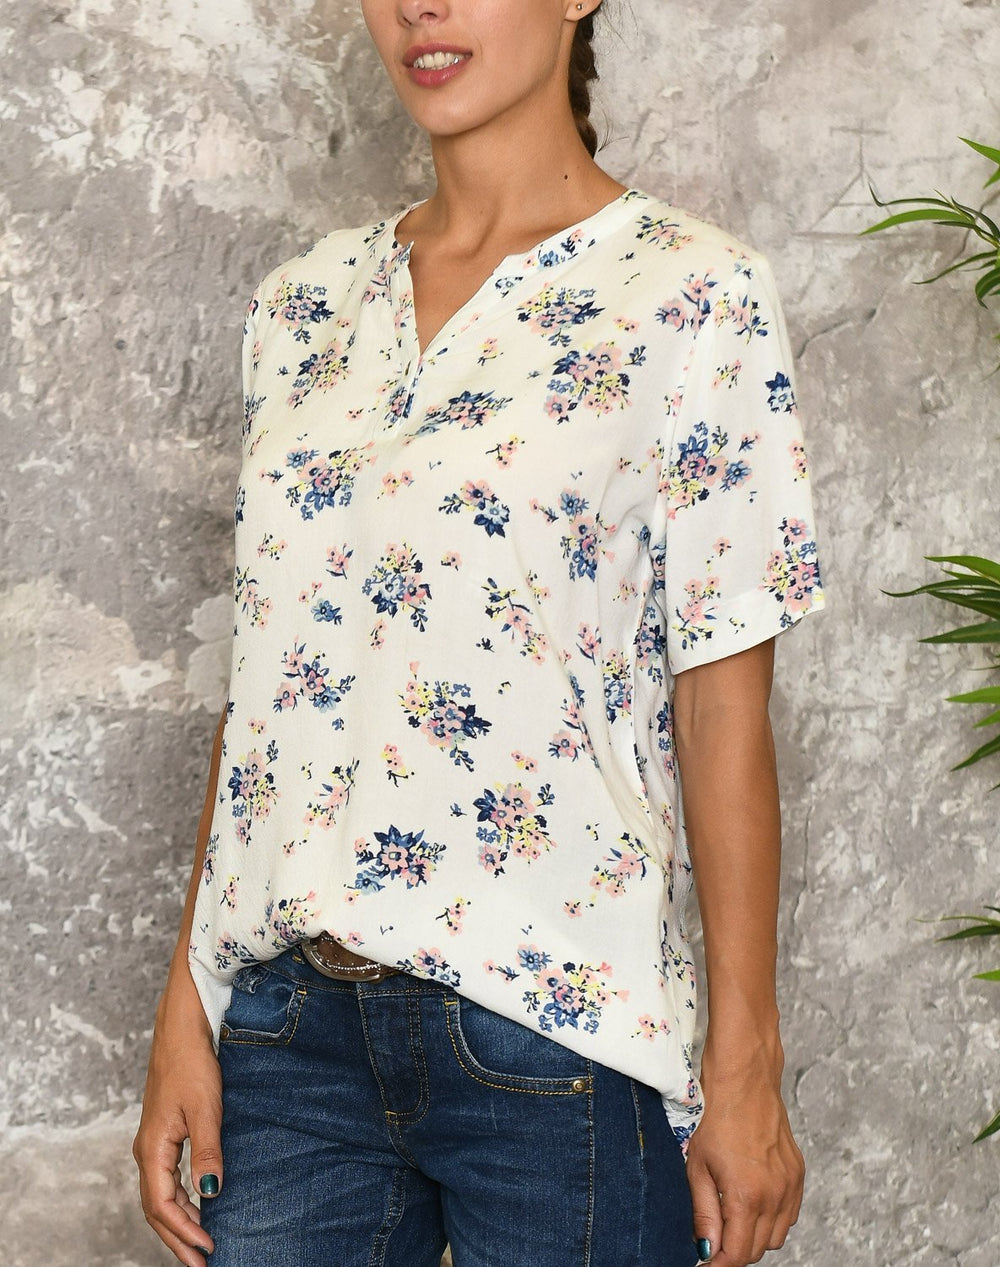 Ofelia Nikkie shirt white - Online-Mode